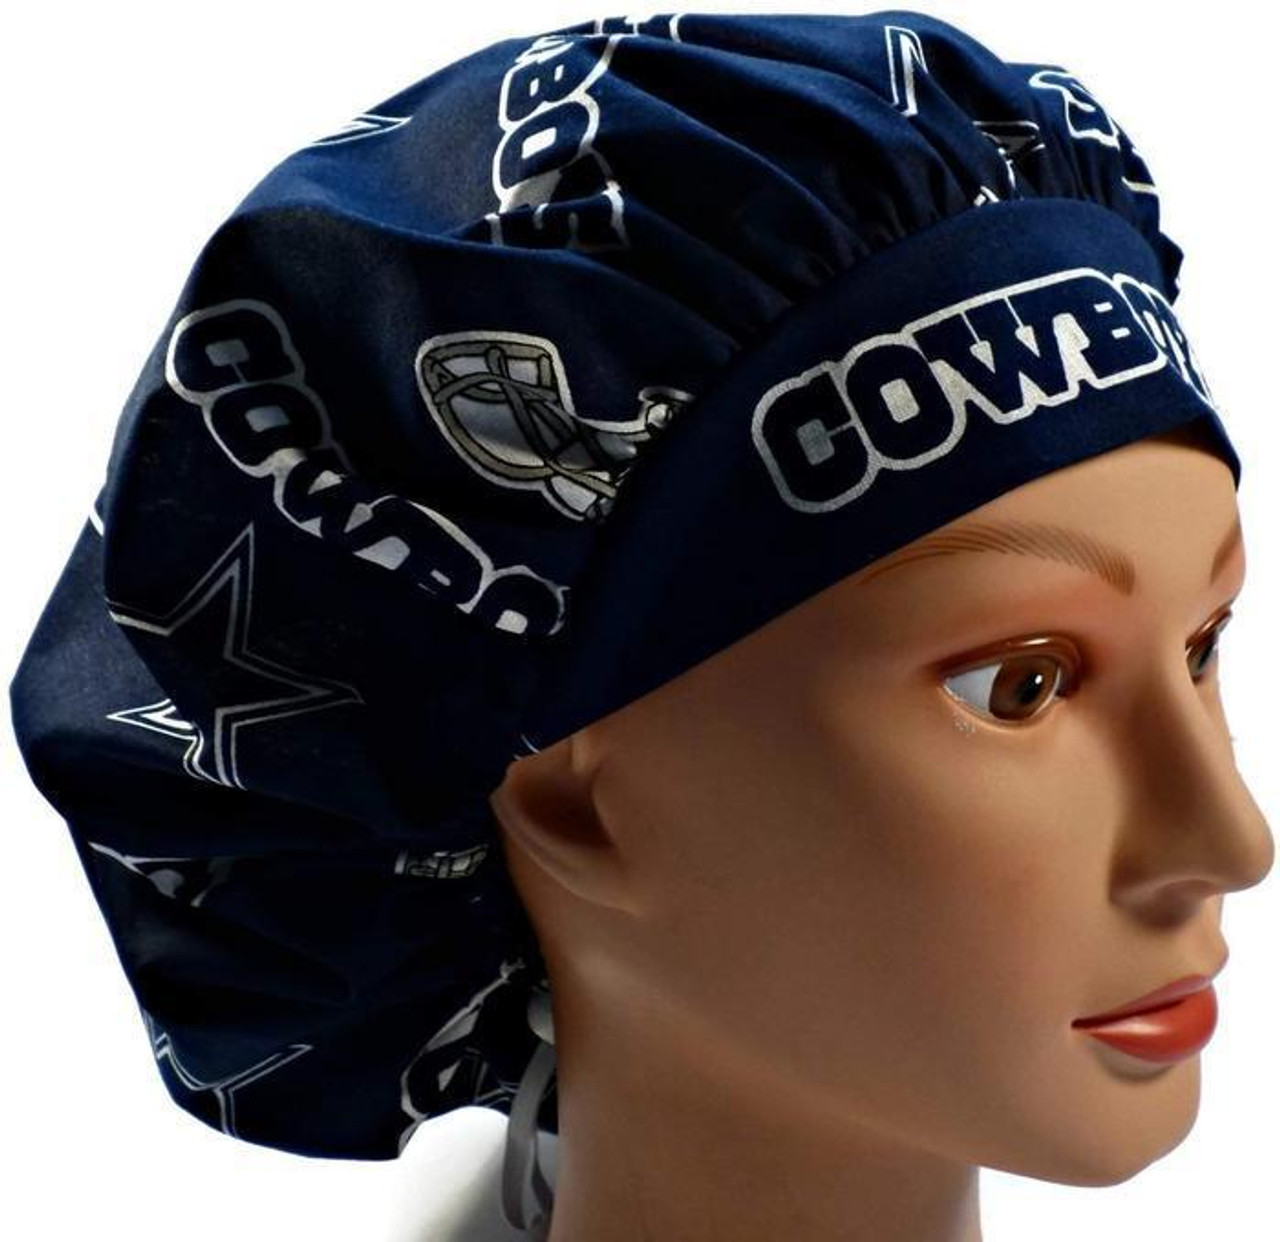 ae0723c47b3 Women's Adjustable Bouffant, Pixie, or Ponytail Surgical Scrub Hat Cap  Handmade with Dallas Cowboys ...